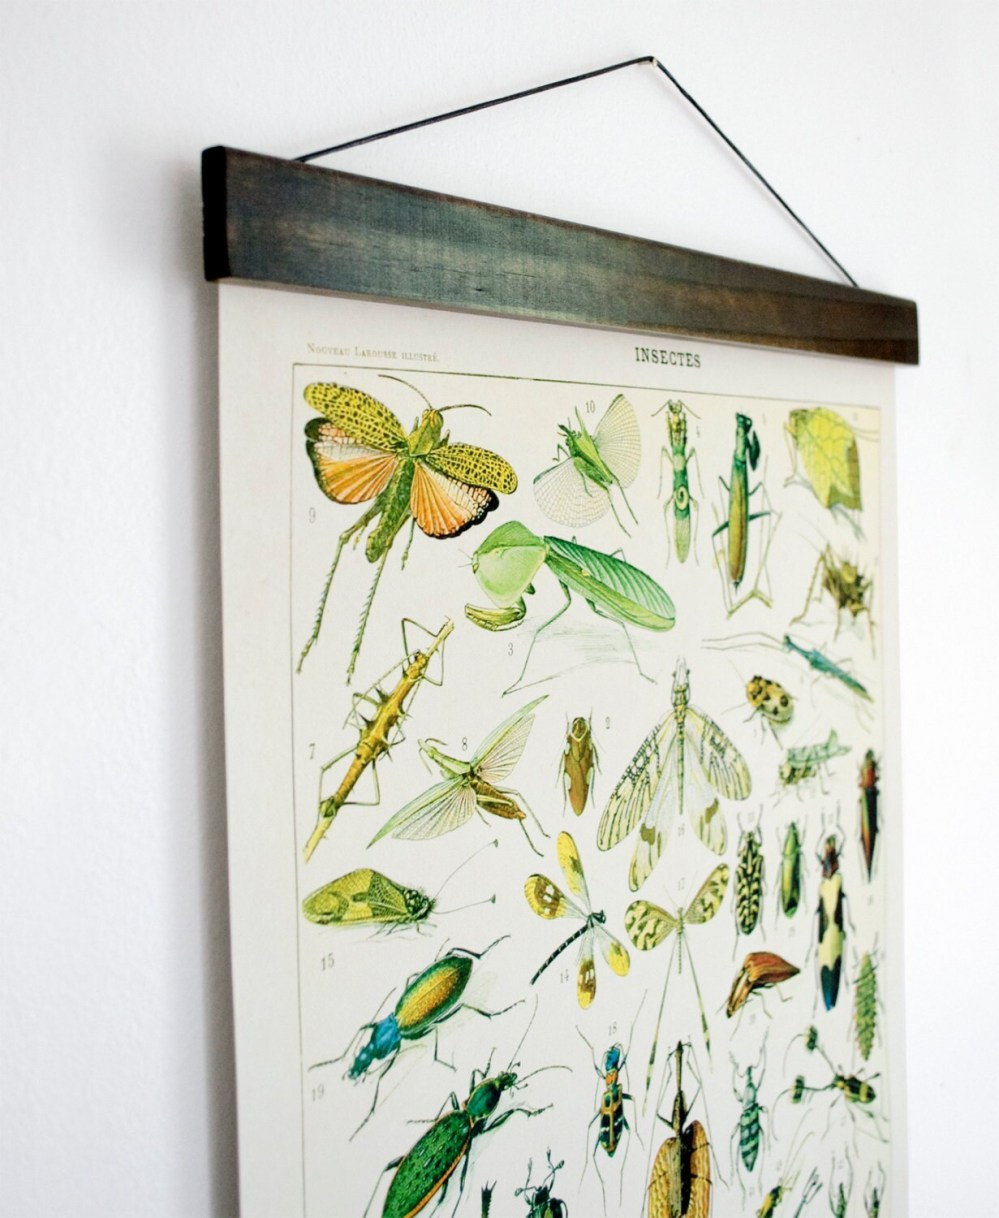 medium resolution of pull down chart insects diagram reproduction canvas print le petit larousse french encyclopedia by millot entomology bugs